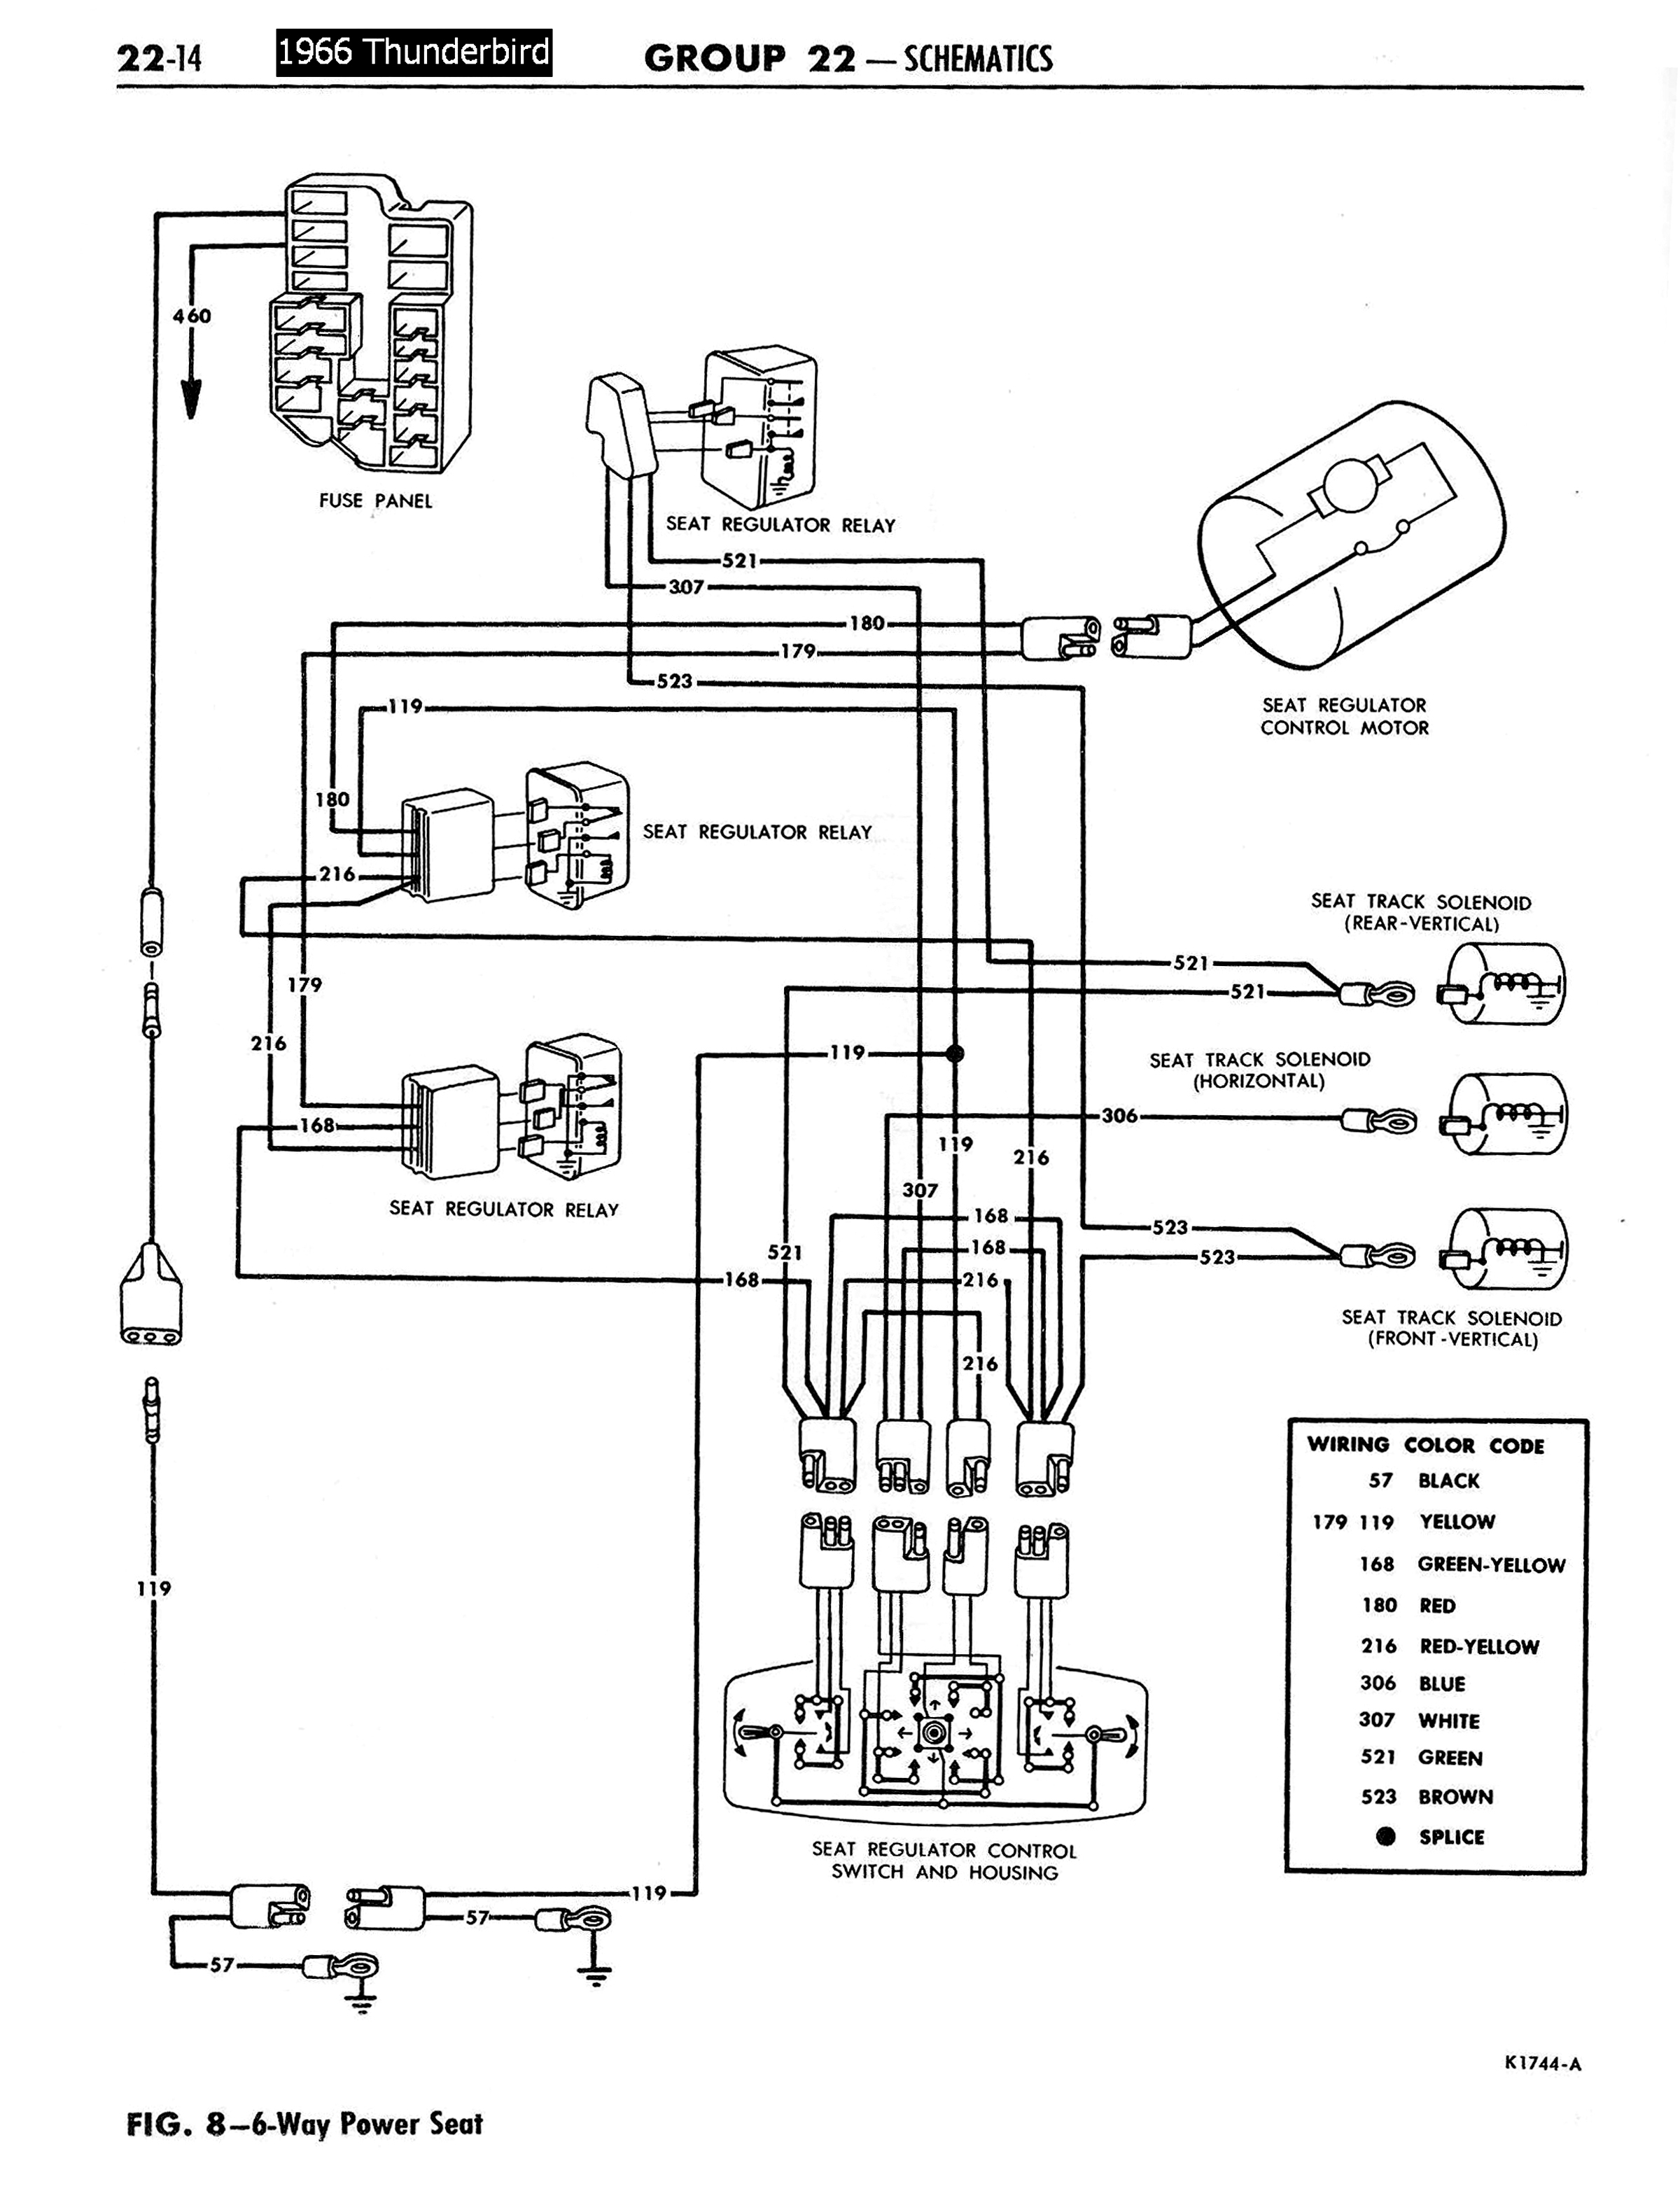 grote wiring diagram for tail lights wiring diagram for tail lights